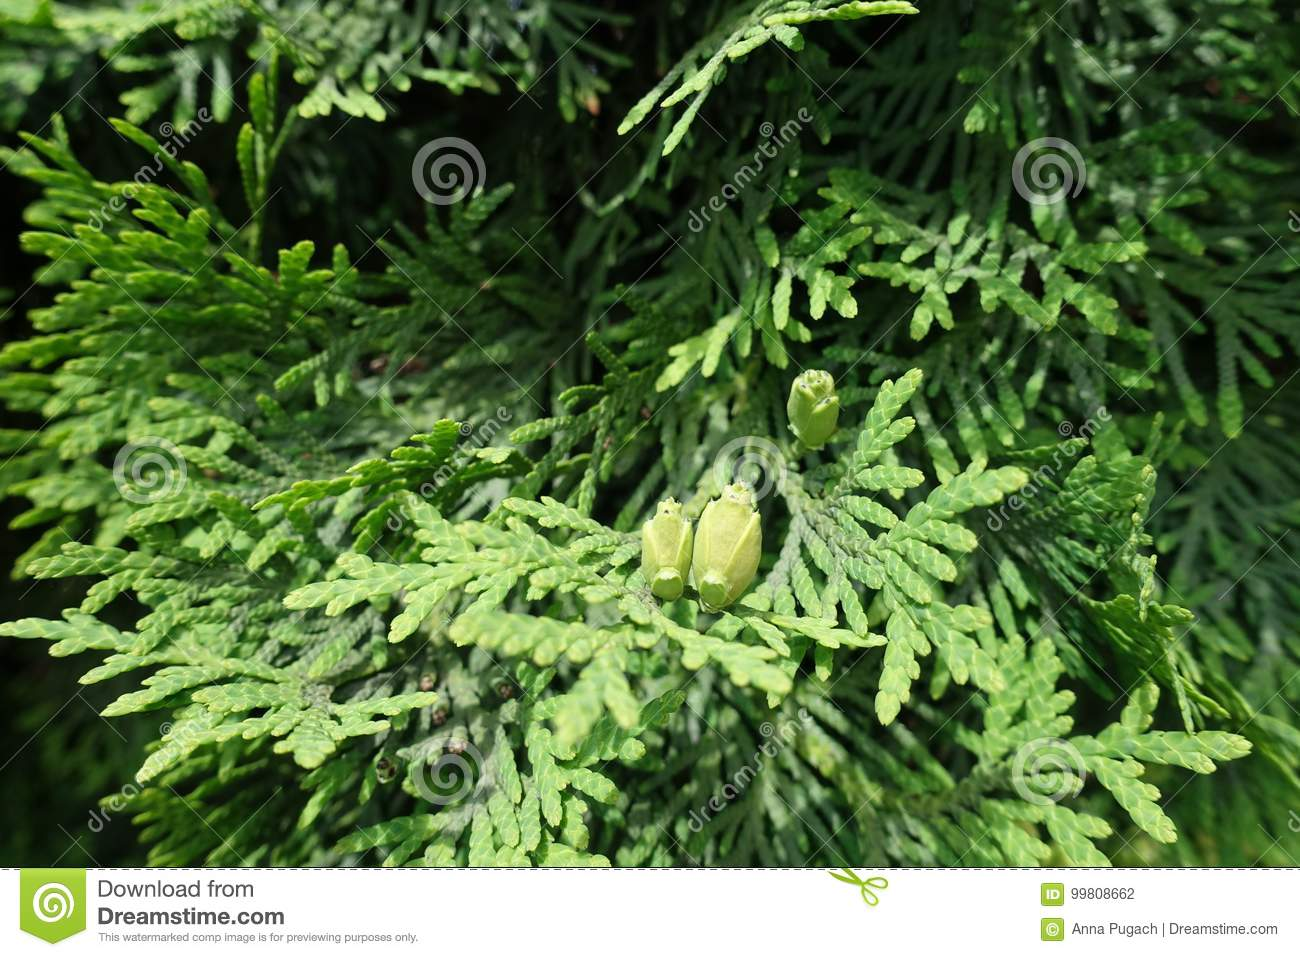 Folhas escamosos e cones da semente de occidentalis do Thuja